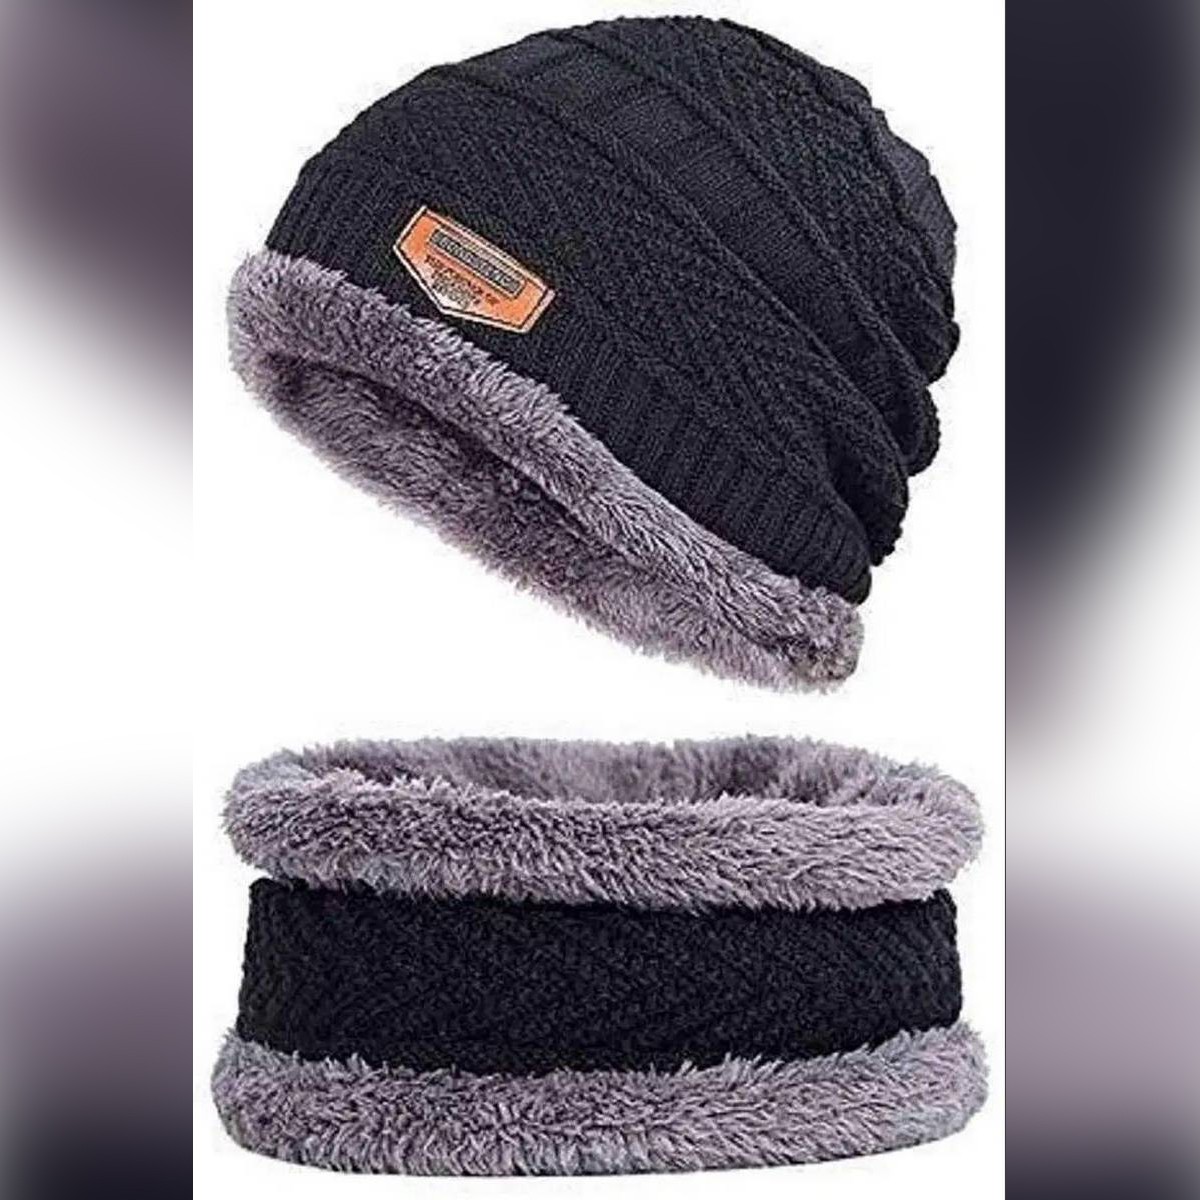 2 pieces hat and neck warmer set -Beanies/monkey Cap -Cap And Muffler set For Mans and Women's Specially for winters